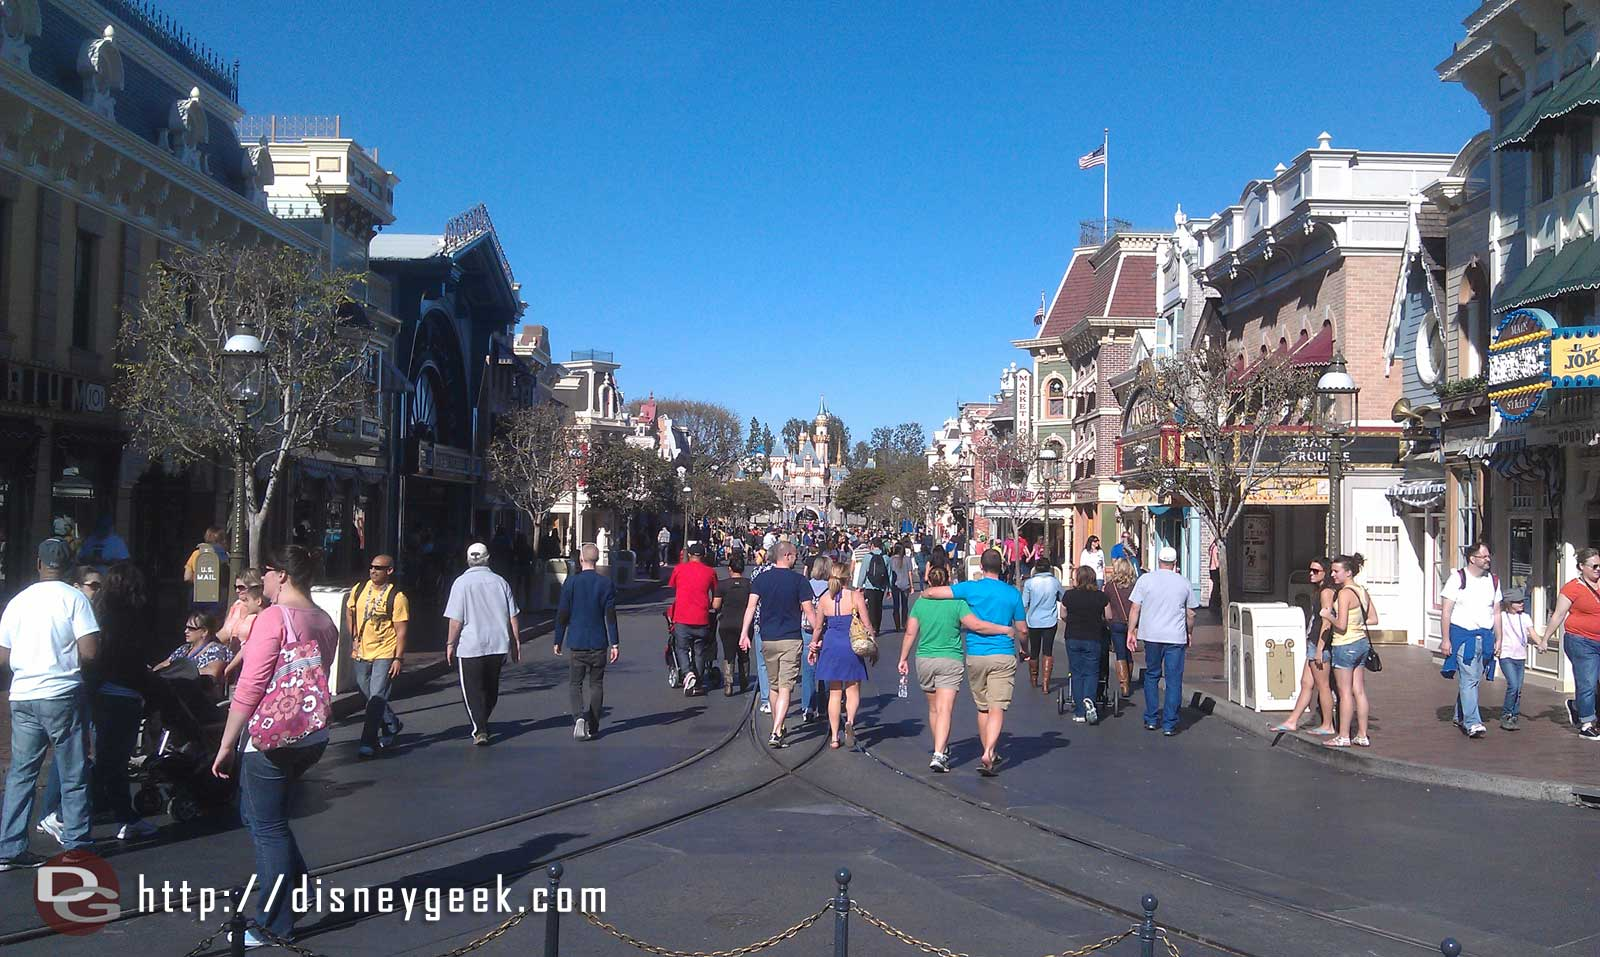 Just arrived at the #Disneyland Resort.  A look down Main Street